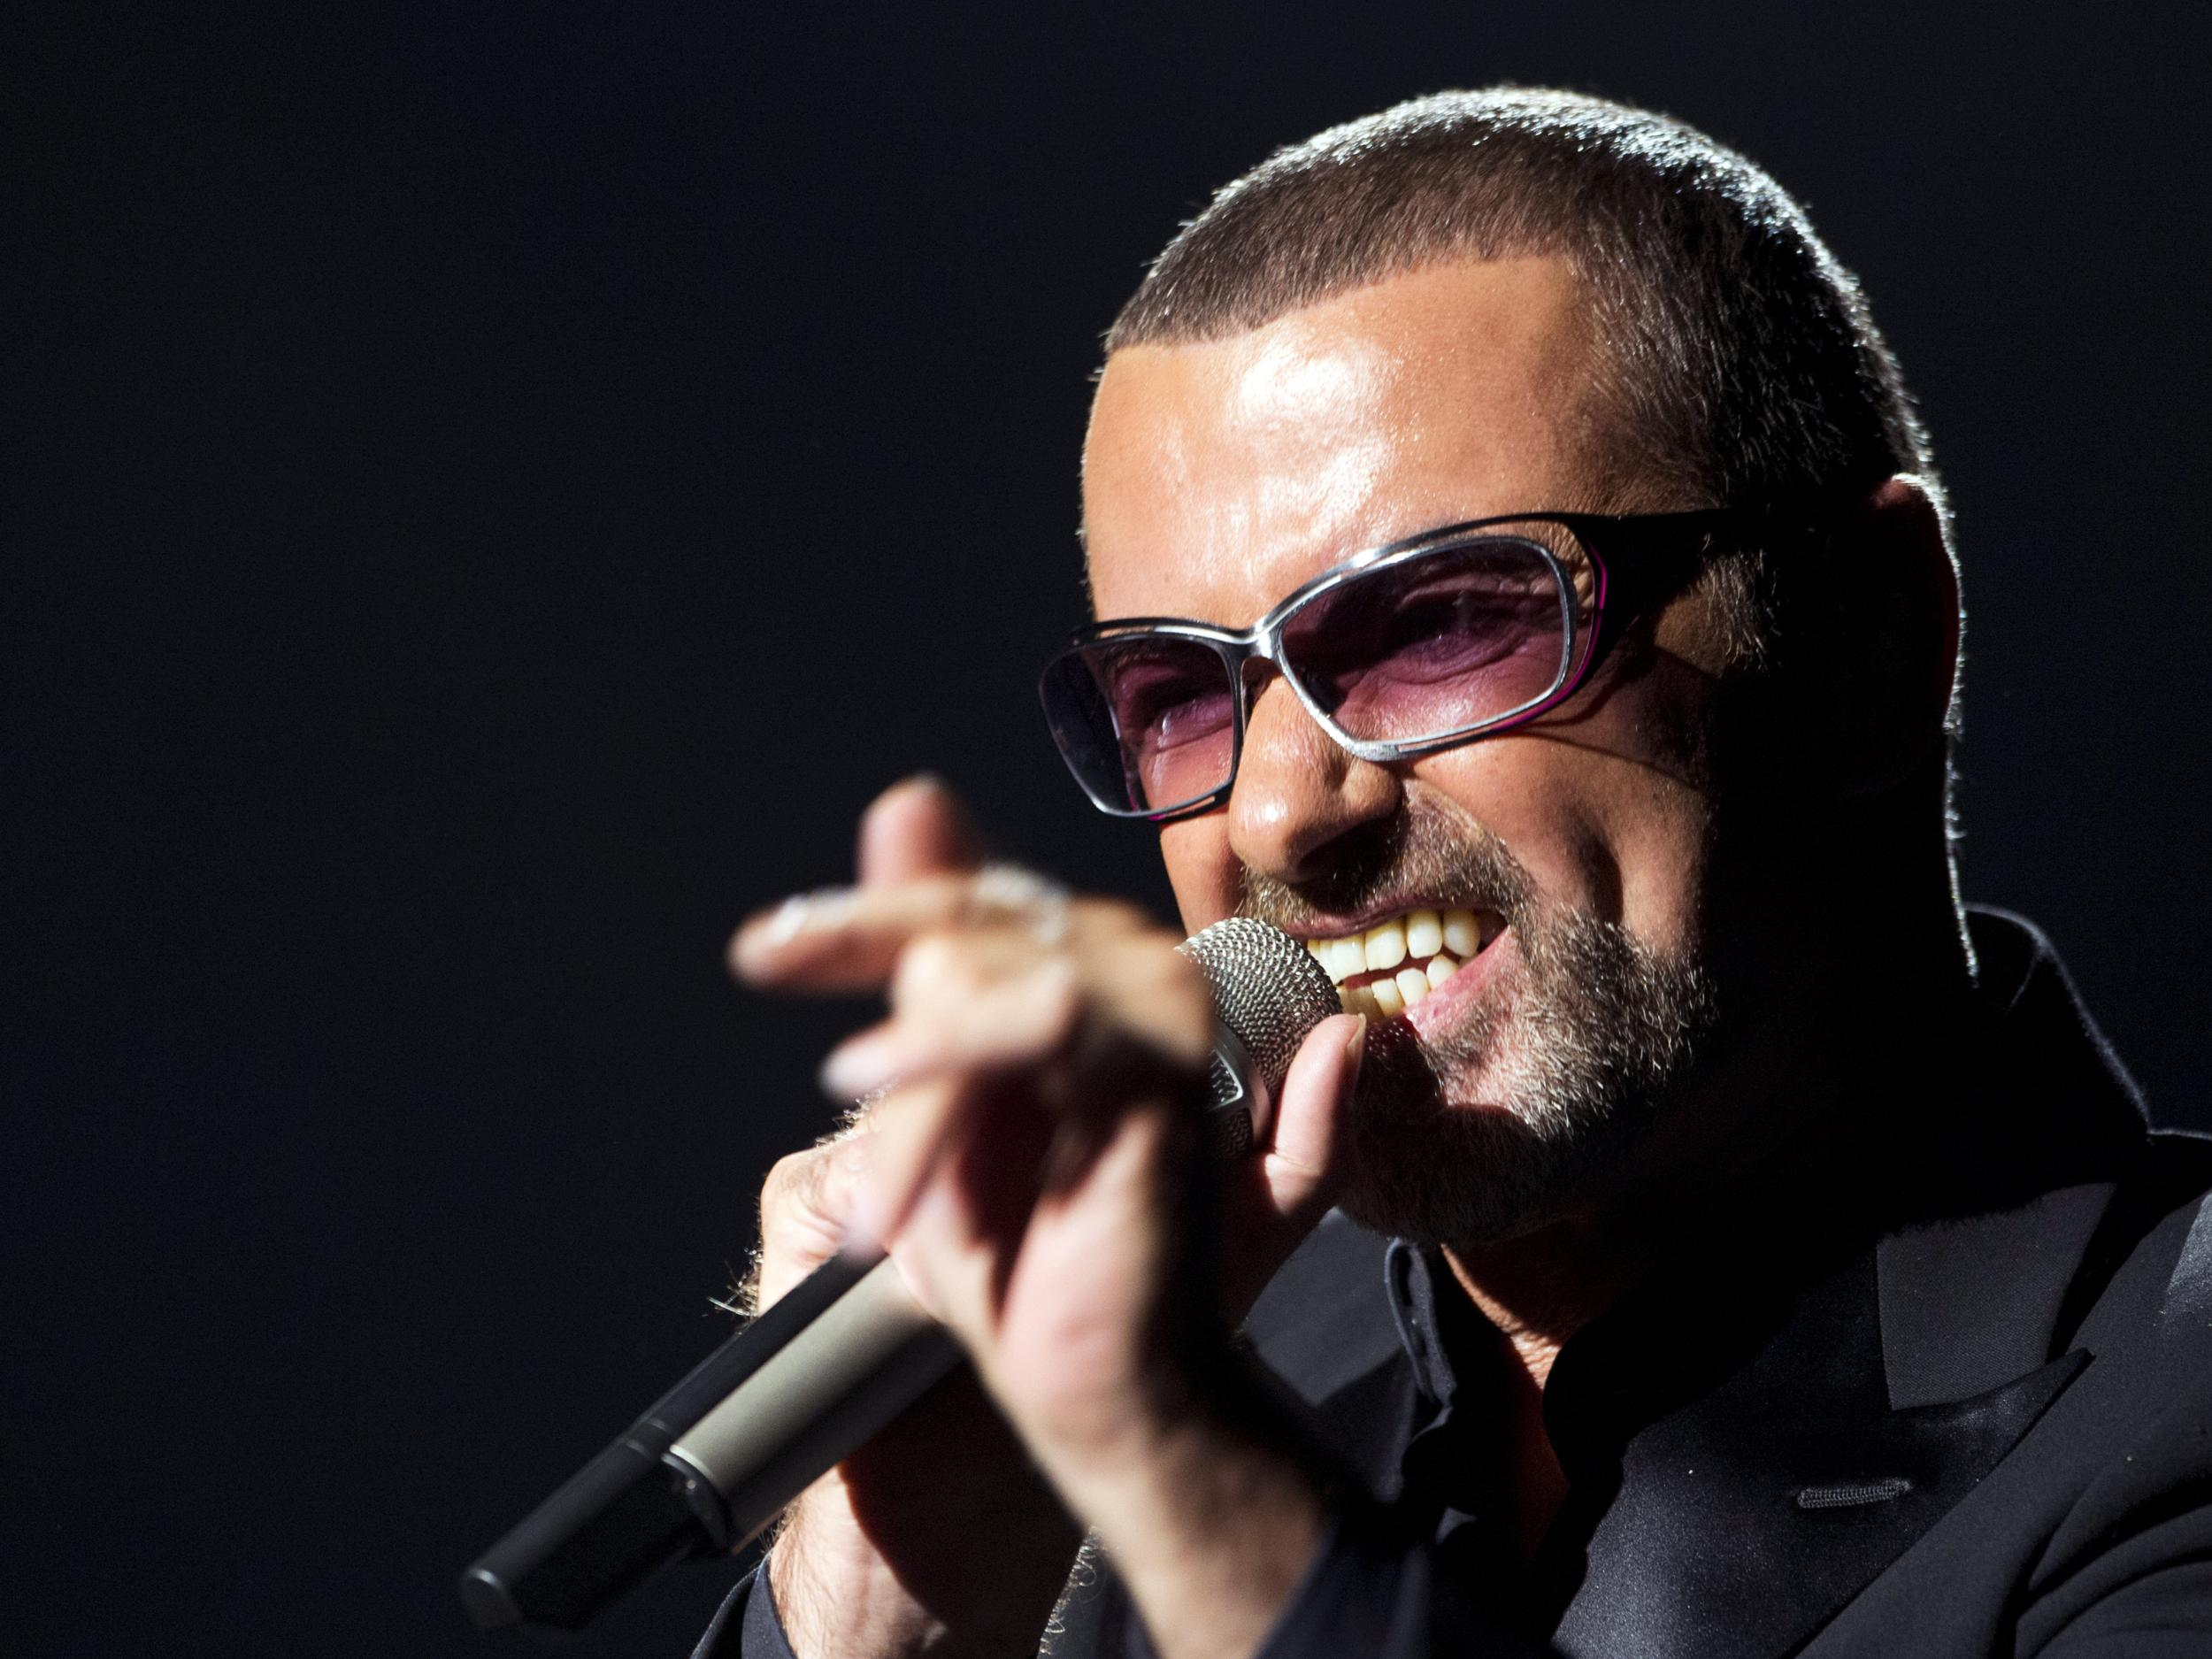 George Michael's 5 greatest music videos | The Independent